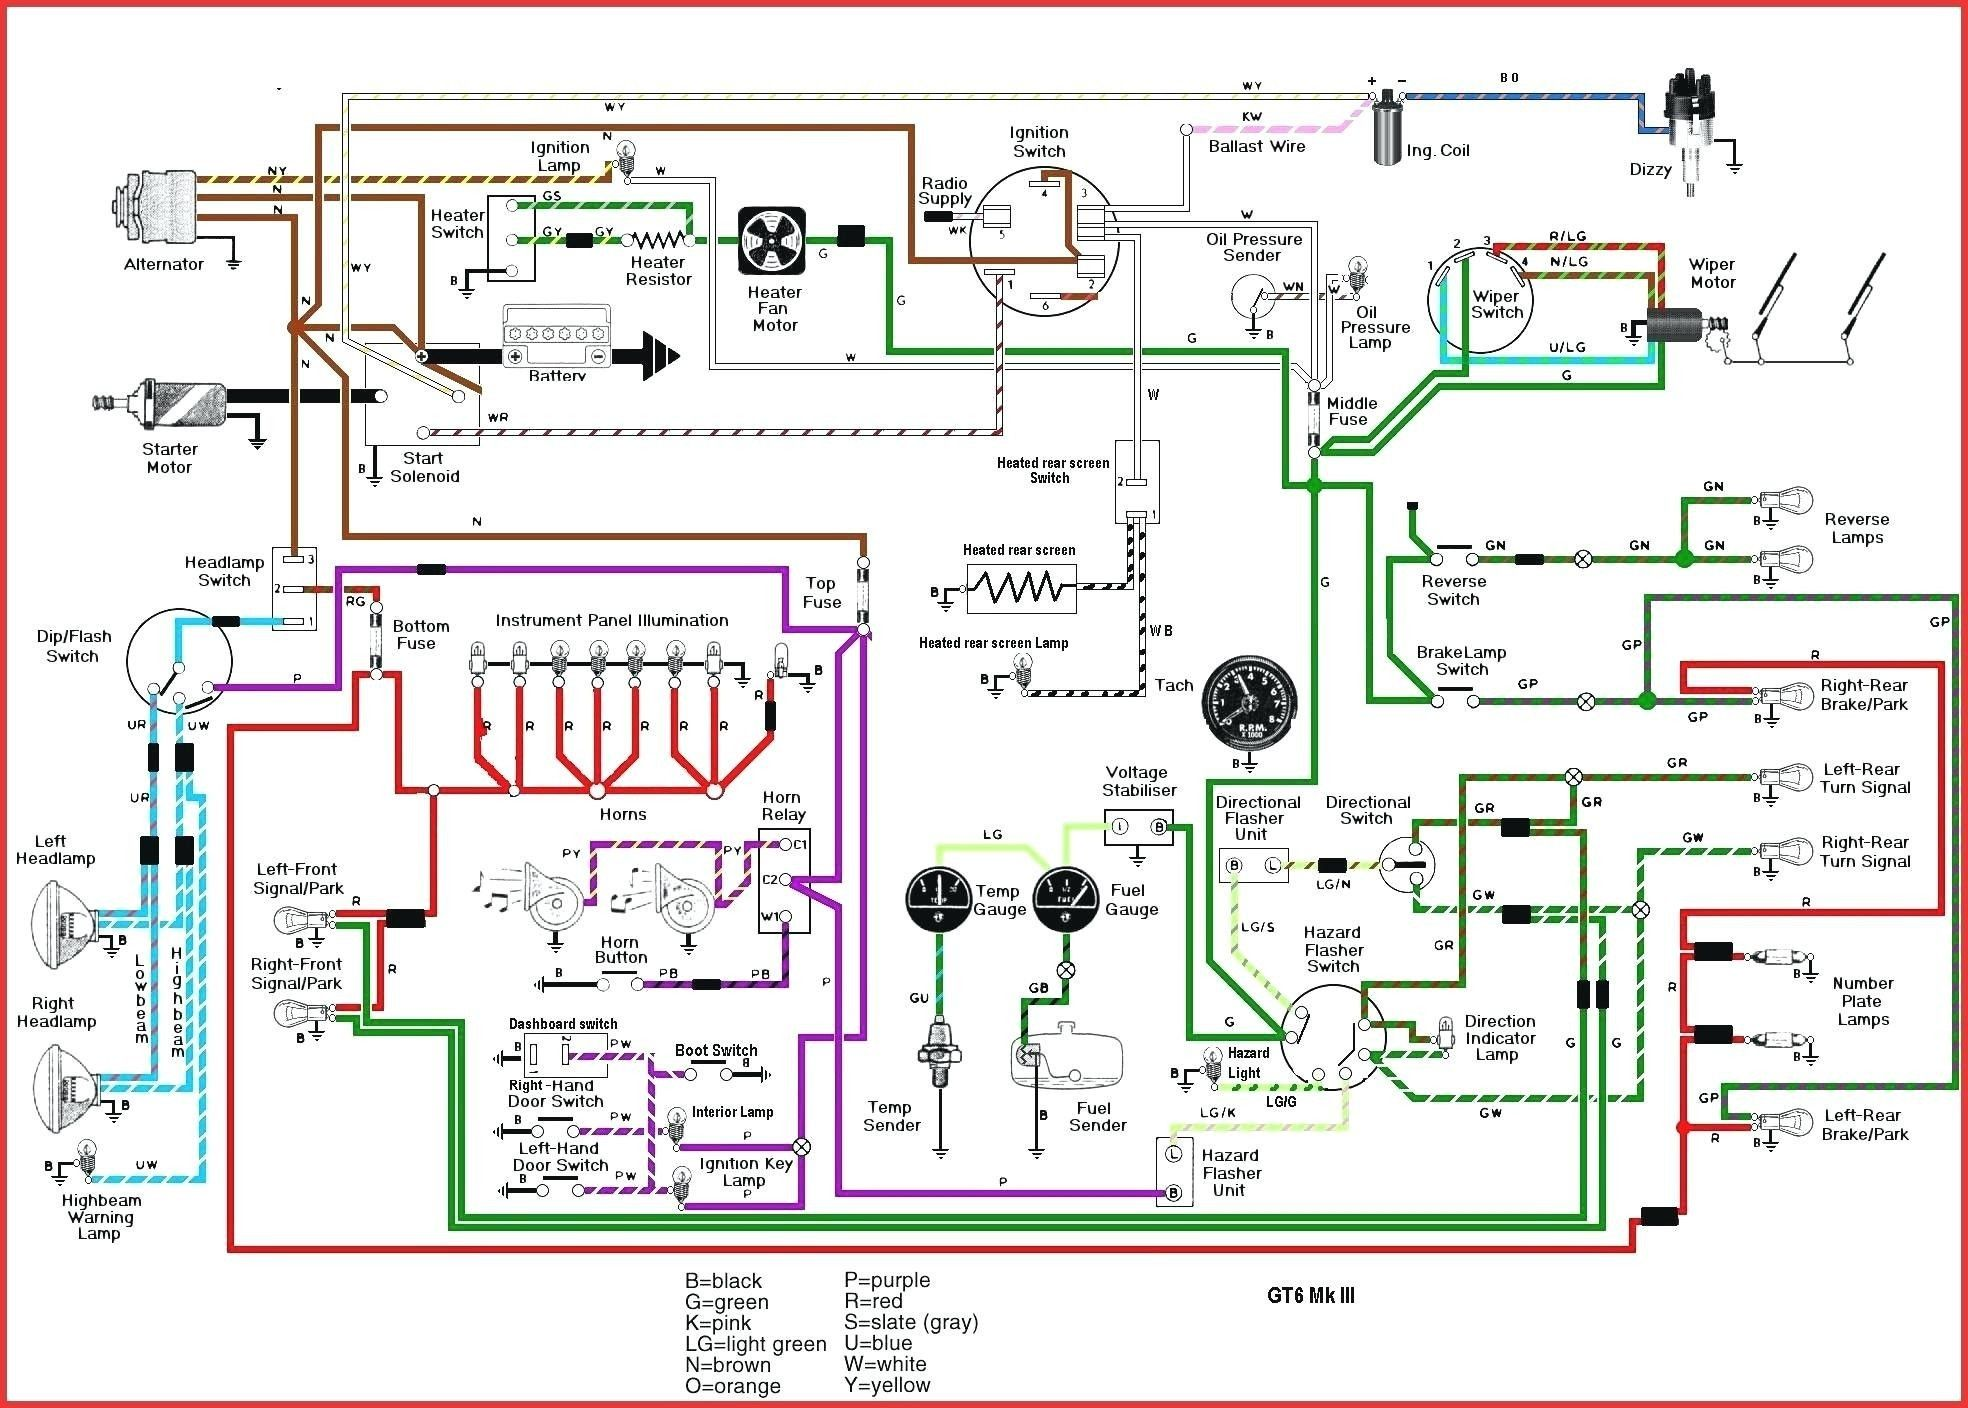 electrical plan new home diagrams digramssample diagramimages wiringdiagramsample  diagrams digramssample diagramimages